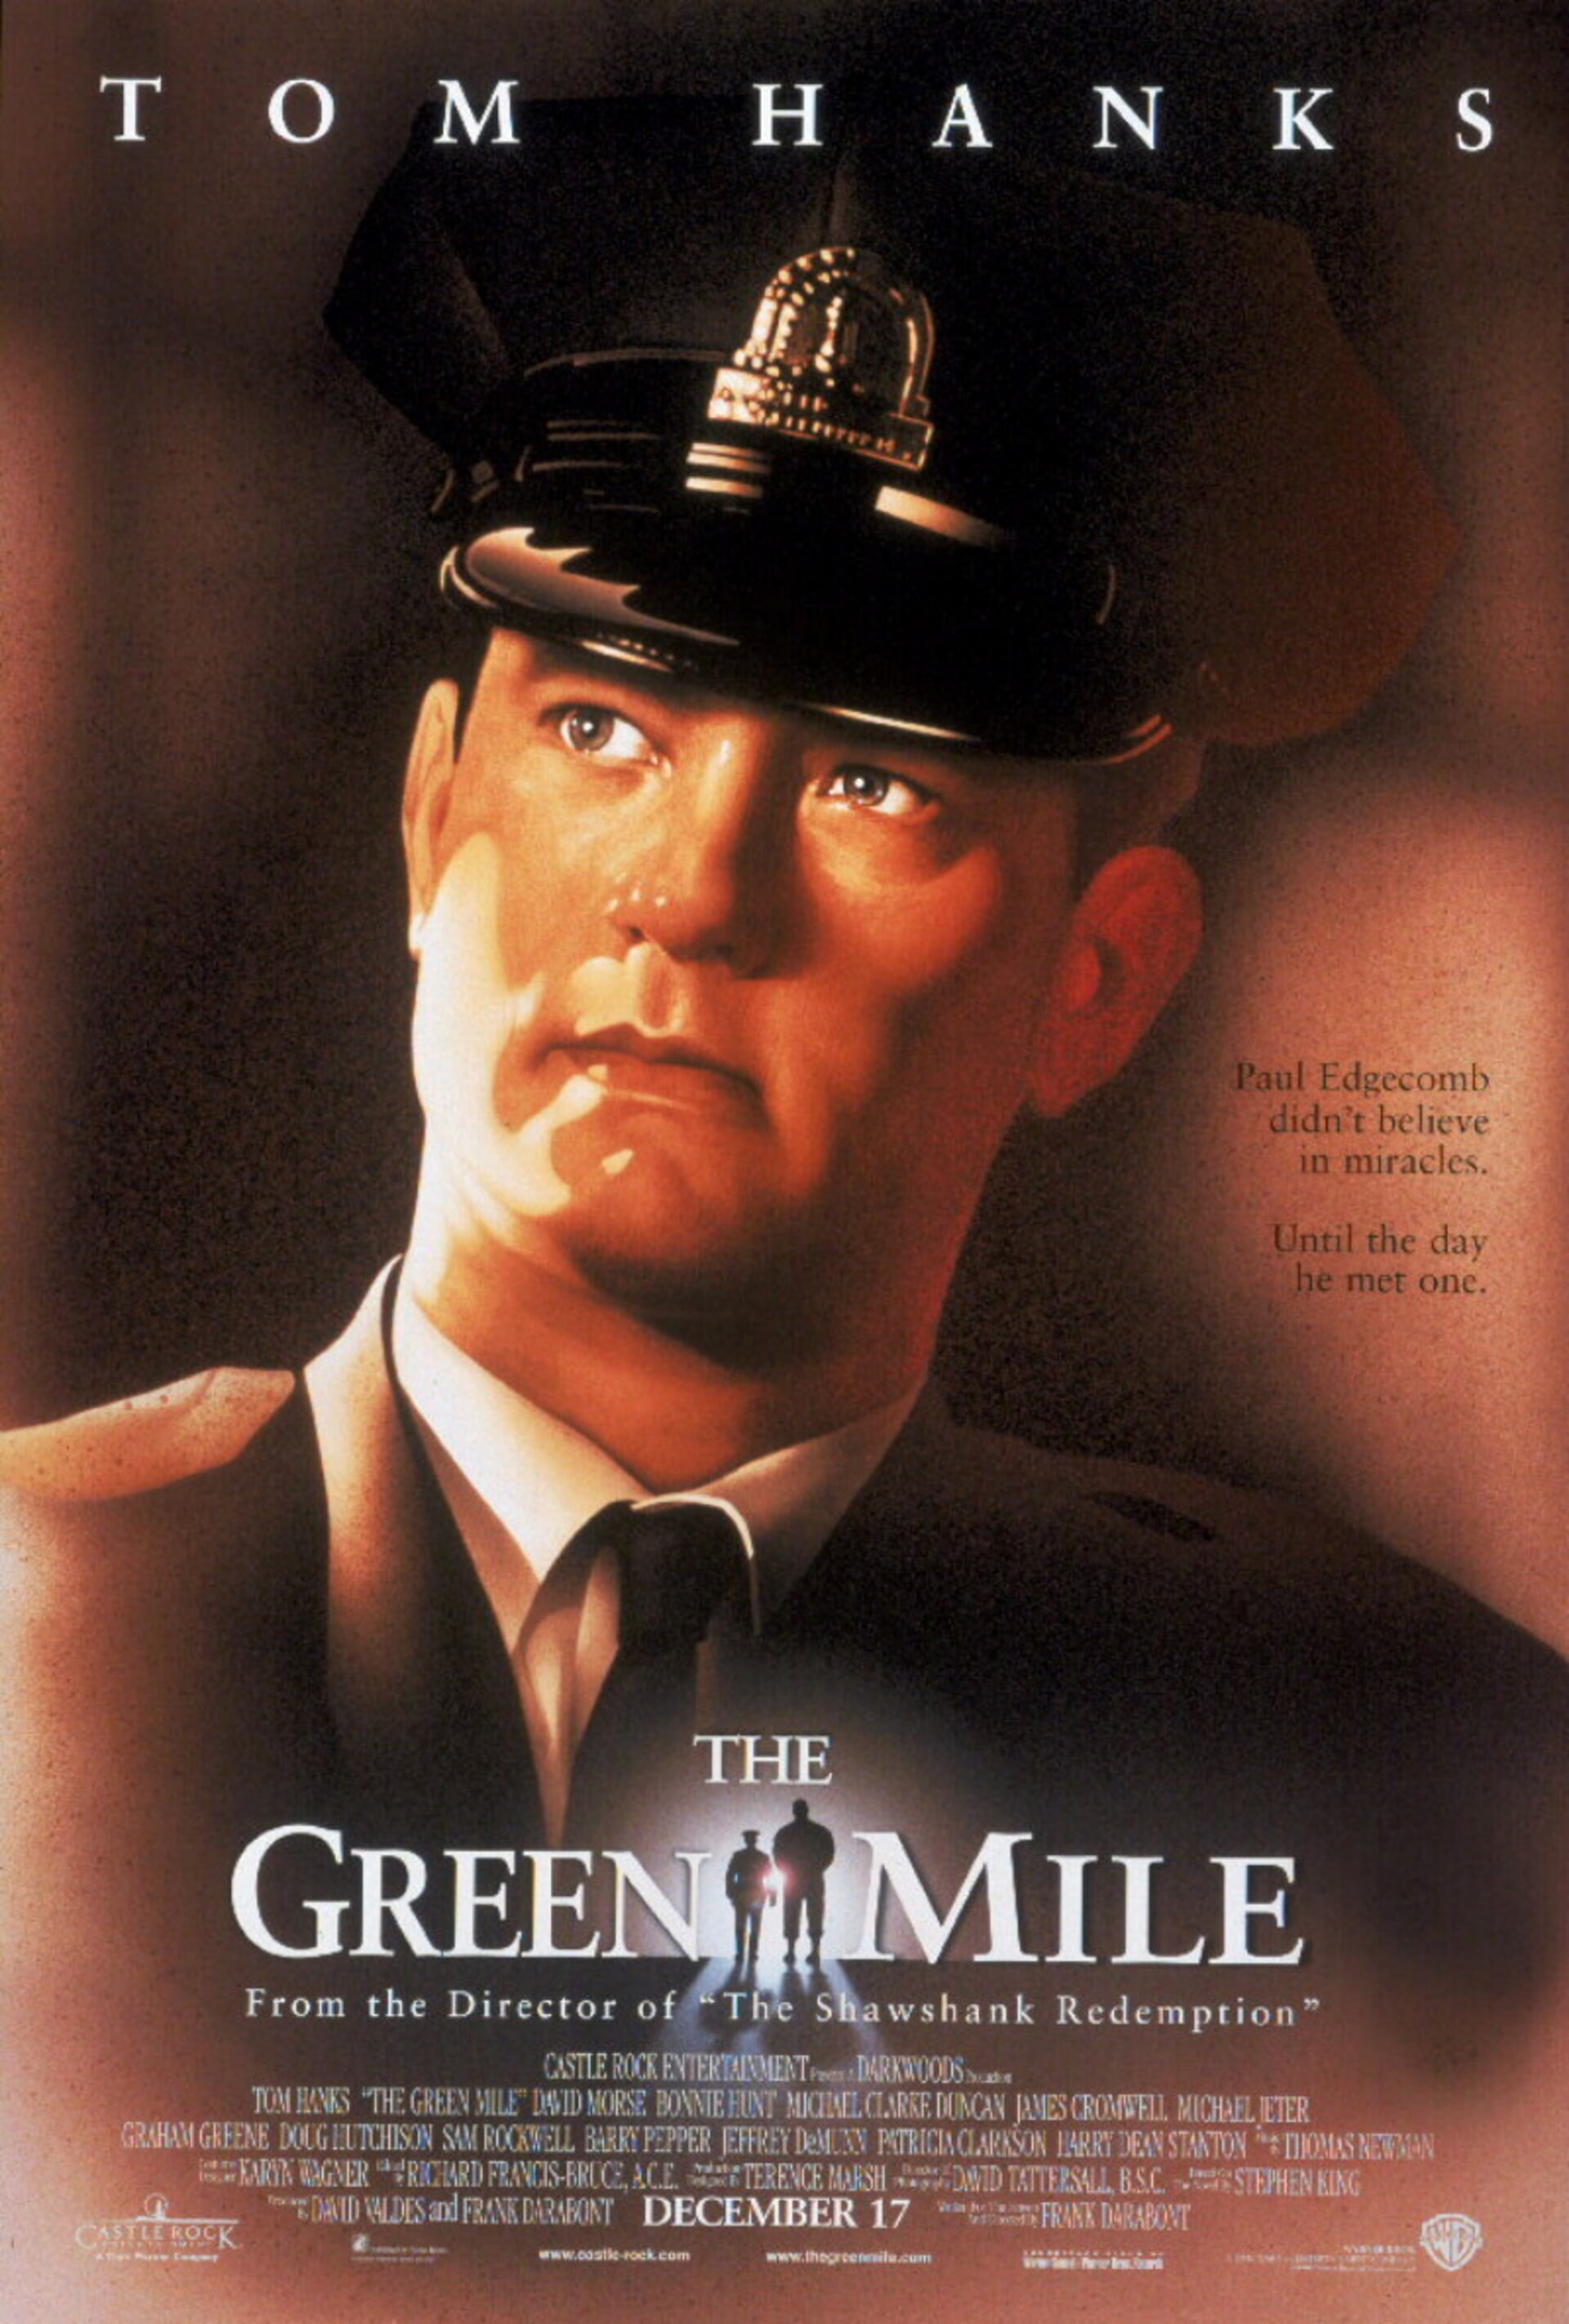 The Green Mile - Poster 1